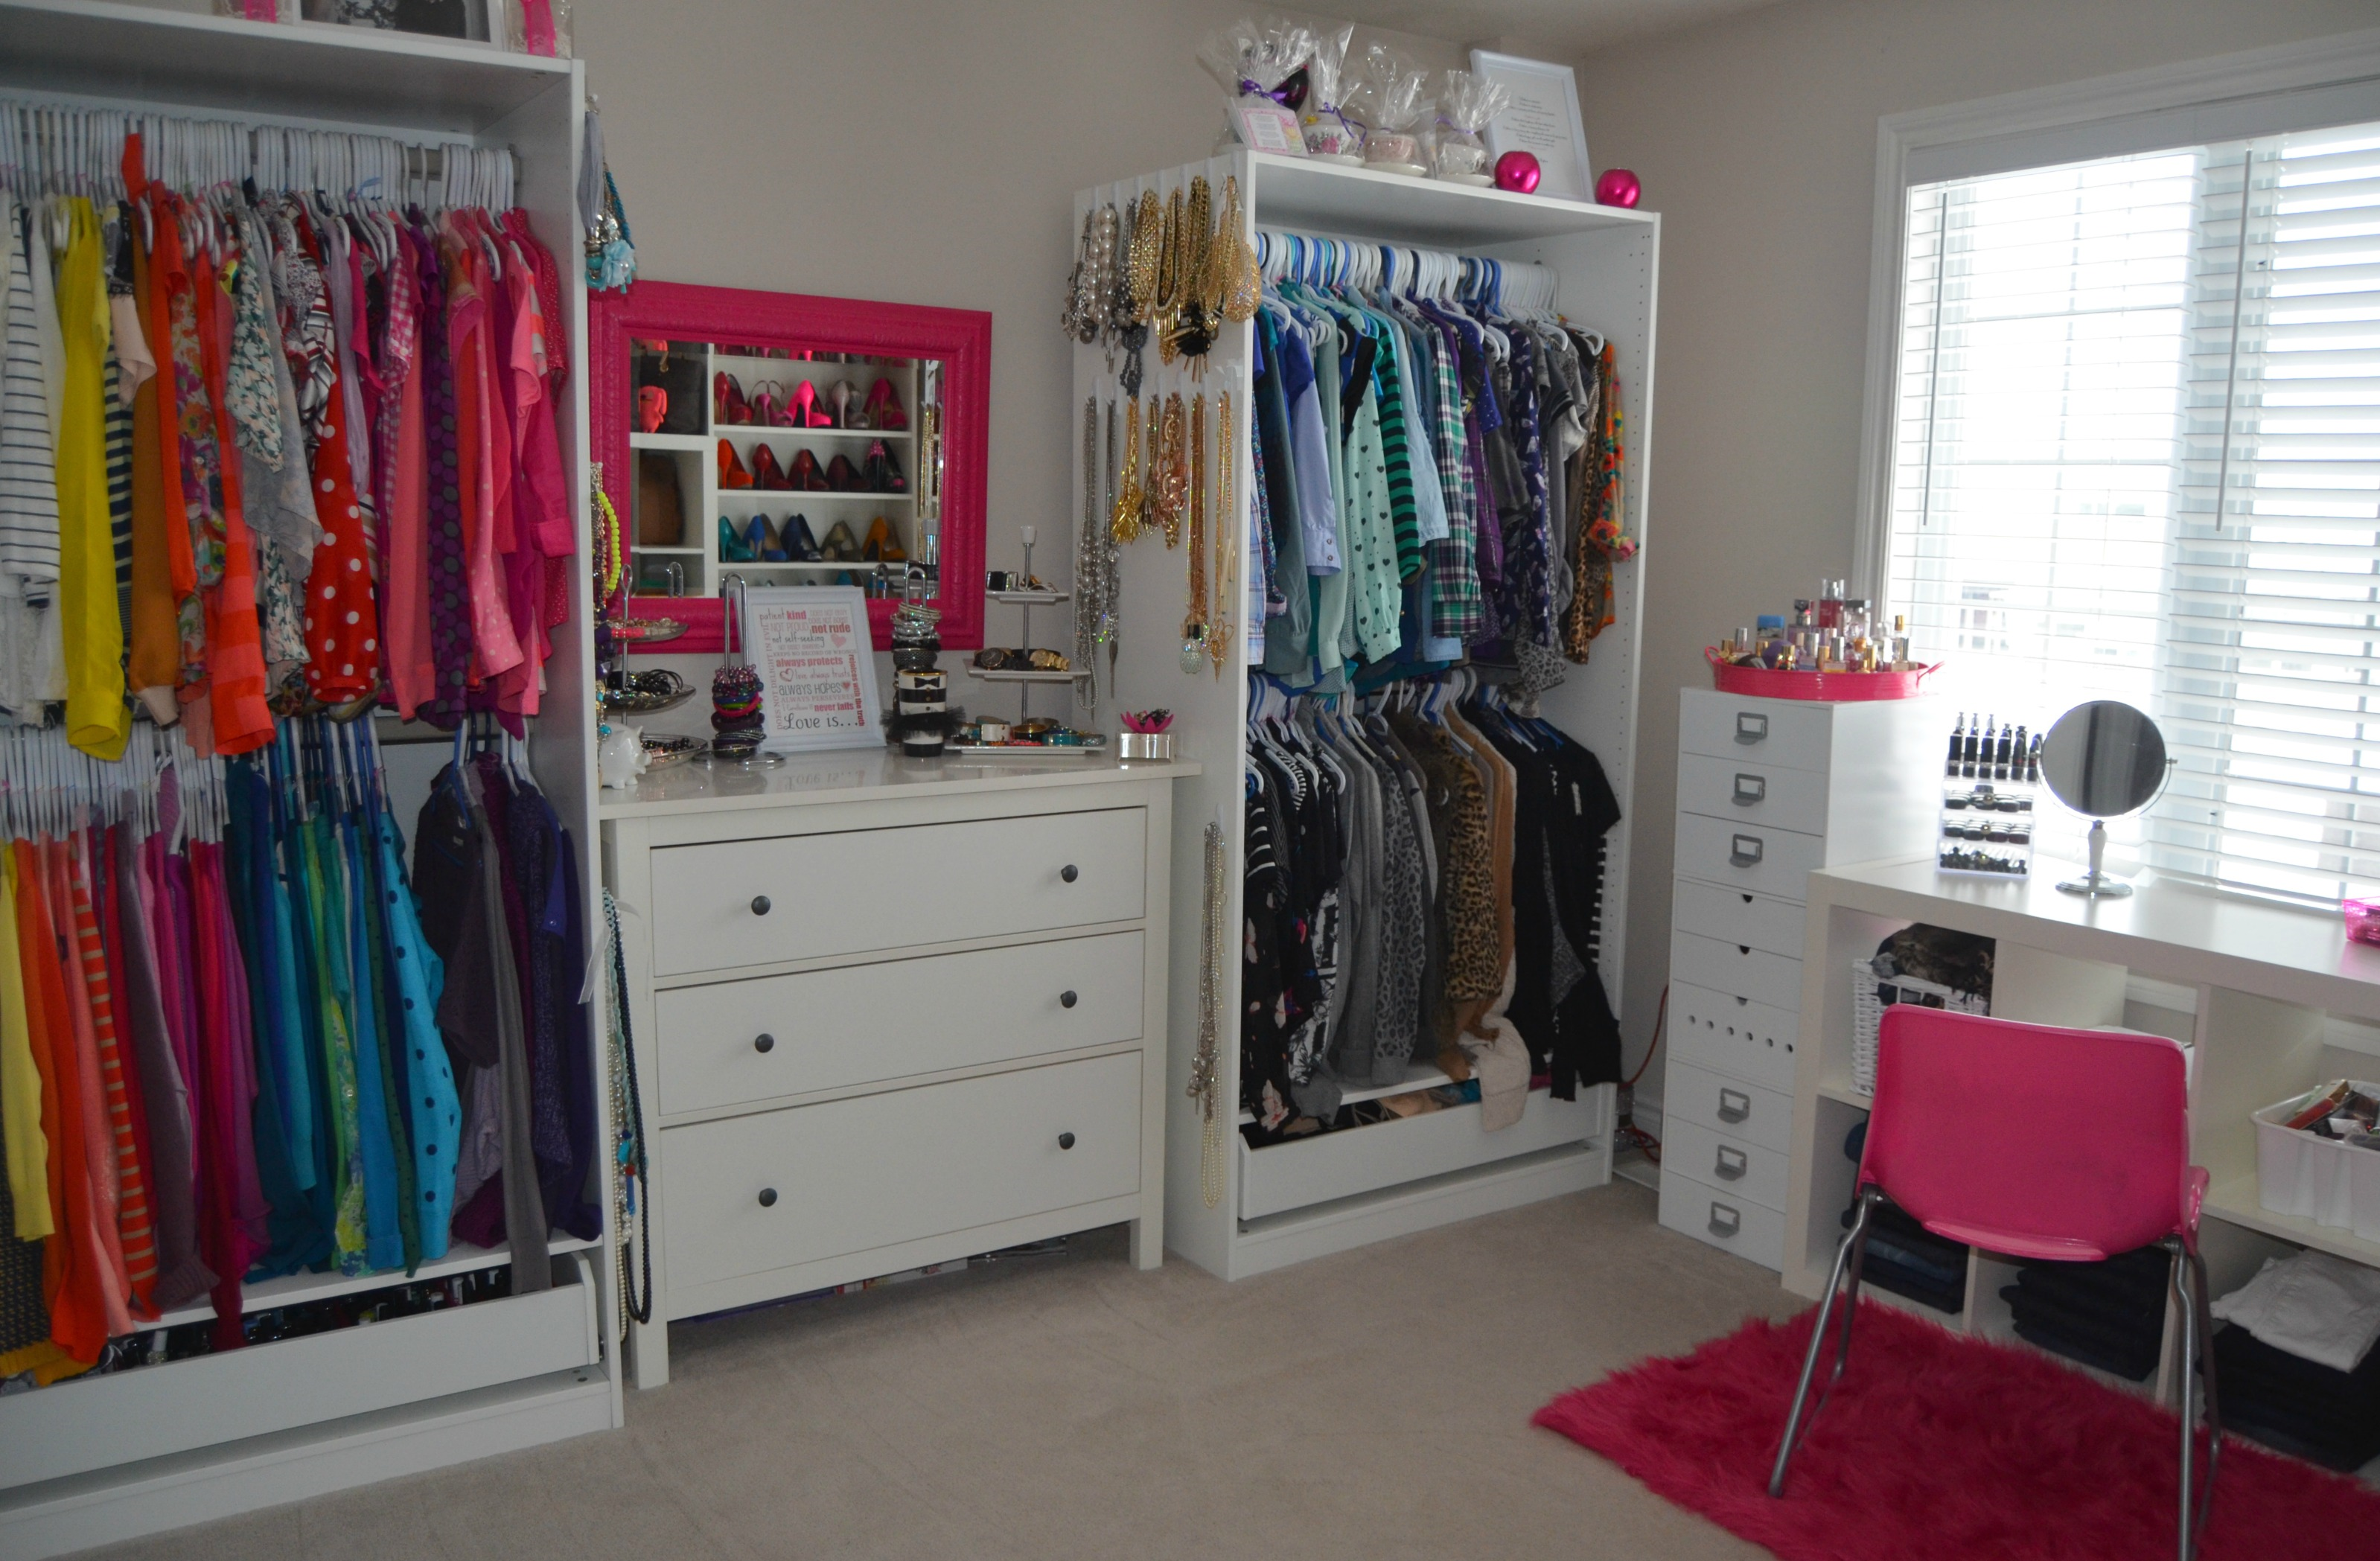 ideas gllry solutions kids teen bedroom closet closets audrey storage parapan beach audreys room s organization classic cassini doors